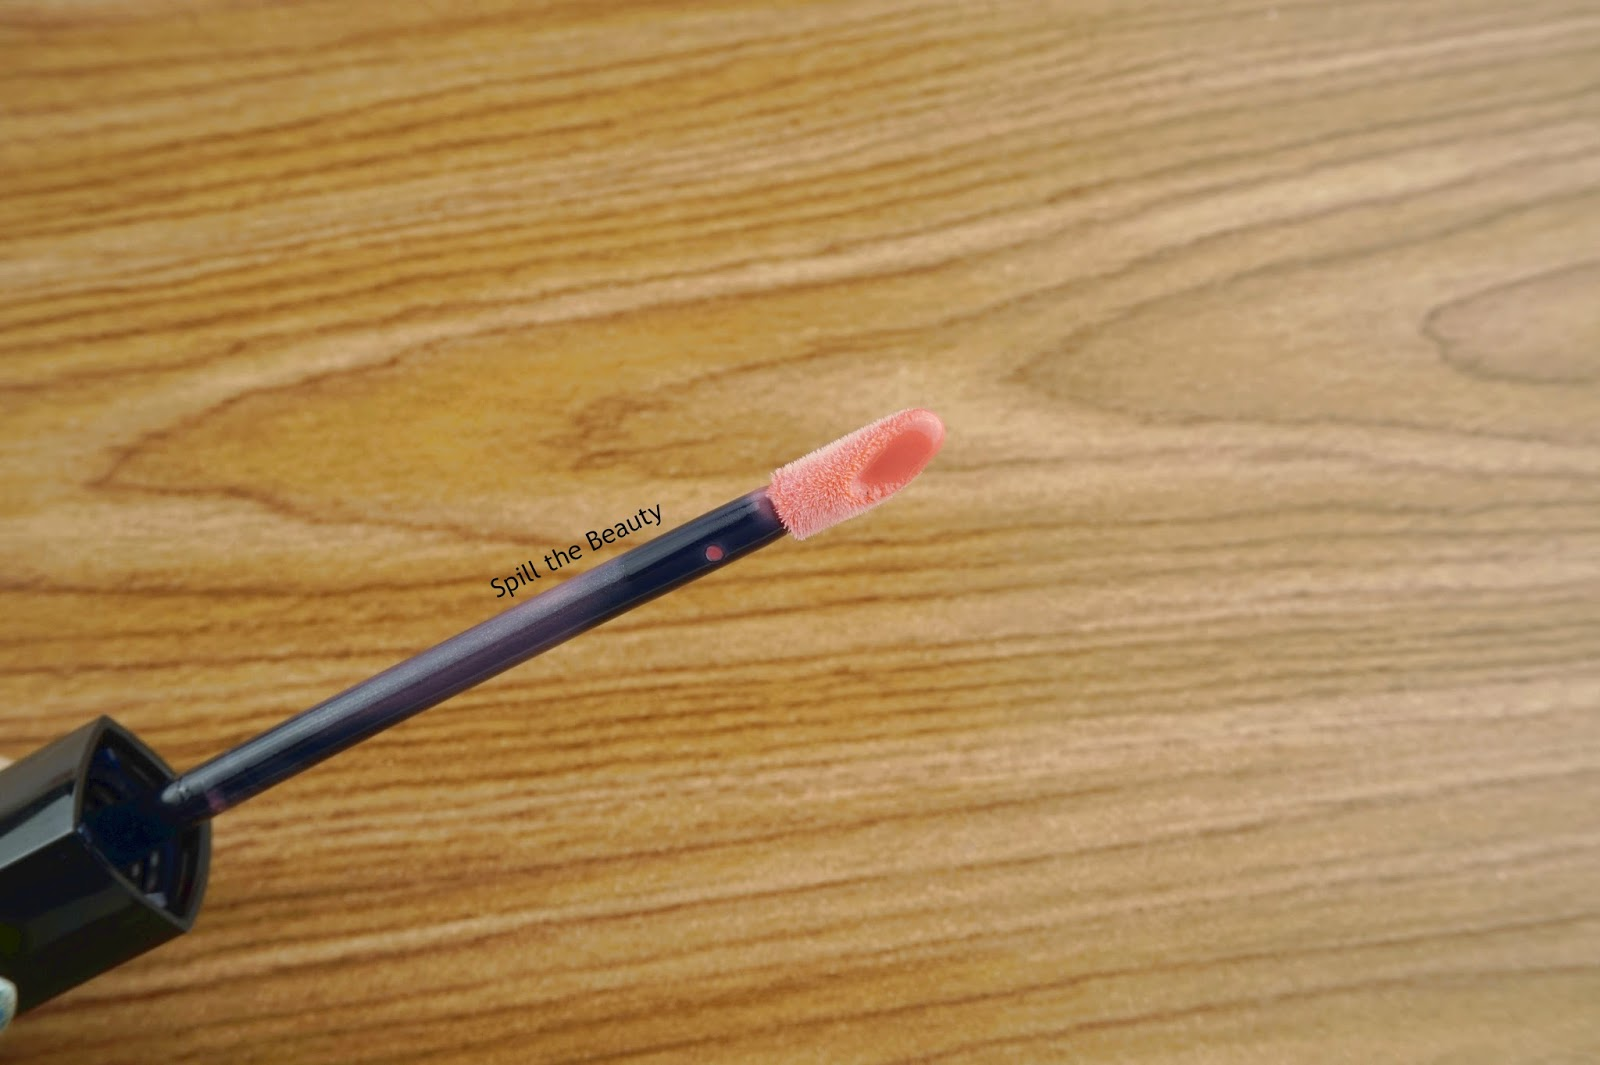 Dior Rouge Brilliant Lipshine & Care Couture Colour 'Miss' (359) - Review, Swatch, and Look